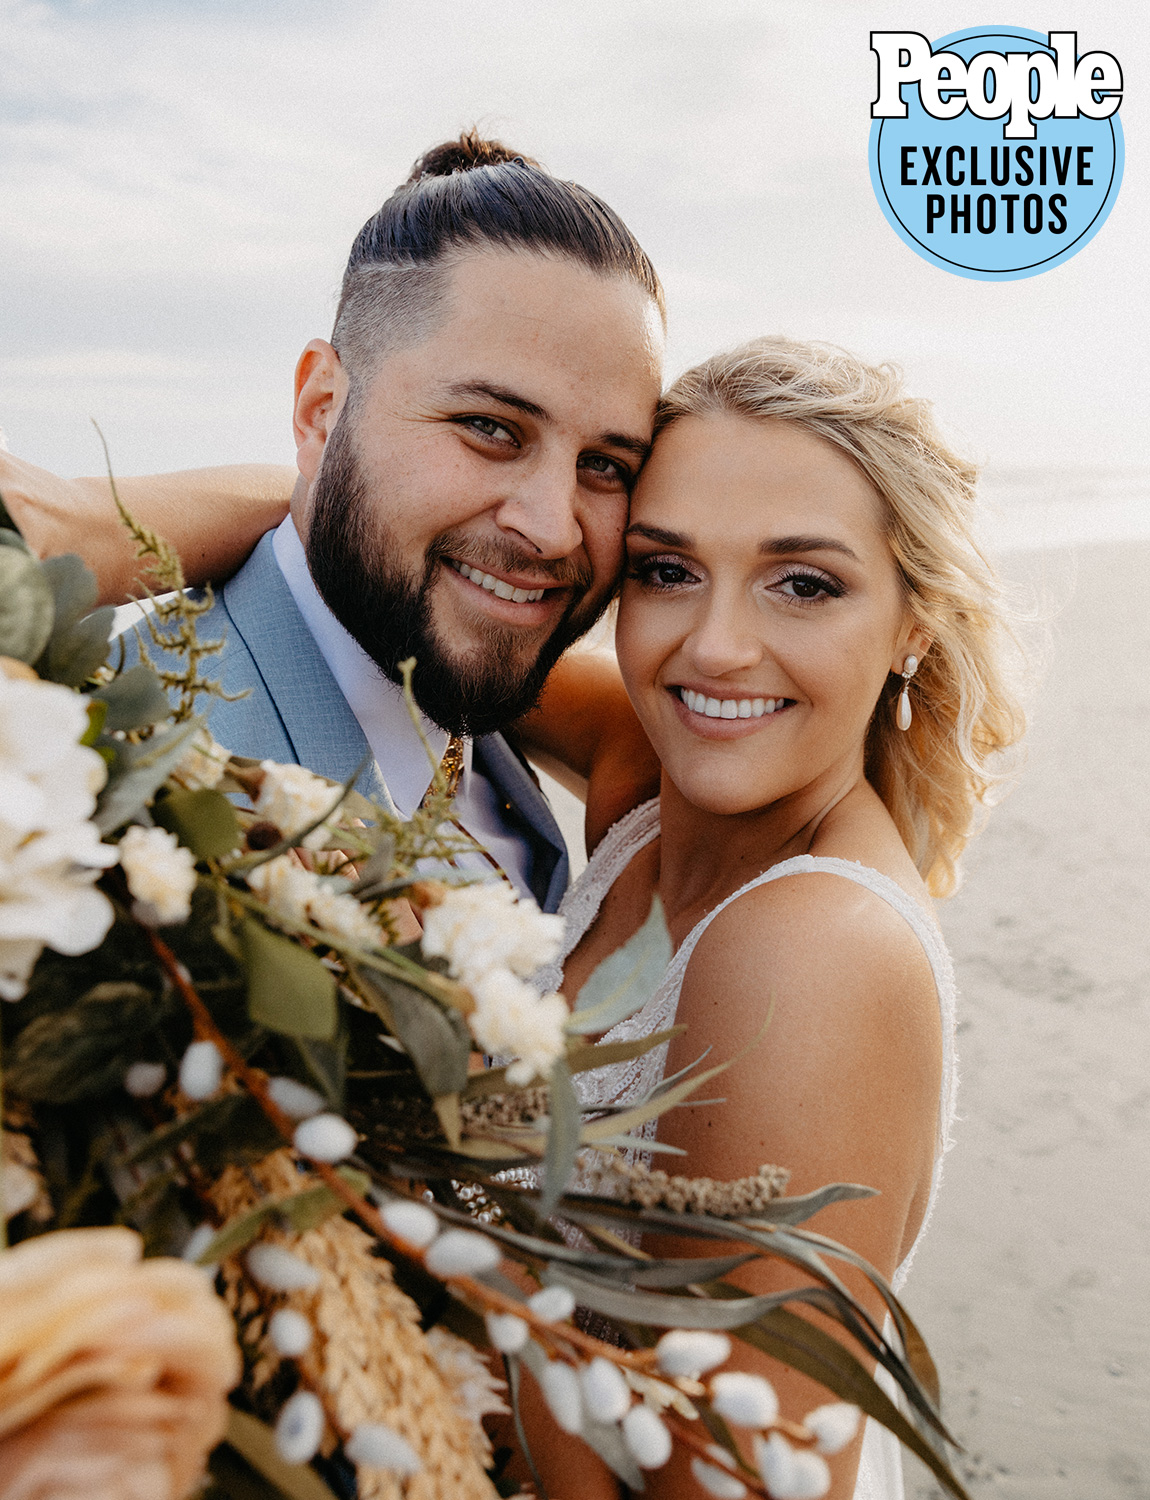 """The rising country singer married his fianceé, Paige Korte, on Oct. 20, after dating for three years. The two made it official in a """"very intimate"""" ceremony in Isle of Palms, South Carolina, on the same beach where Korte's parents got engaged 32 years ago.                             The couple said their """"I Dos"""" in front of close friends and family, including maids of honor Brooke Korte and Dana Sheehan, bridesmaids Taylor Gablehouse, Julia Rogers, Jenna Root and Taylor Morin, best men Chris Perkins and Drew Filmore and groomsmen Zach Abend, John Luke Carter, Blake Wellington, Cam Lutz and Dusty Barker.                             Filmore's bus driver, Rick Griffith, married the couple, who both wrote their own vows.David Kodner Personal Jewelerdid the rings."""